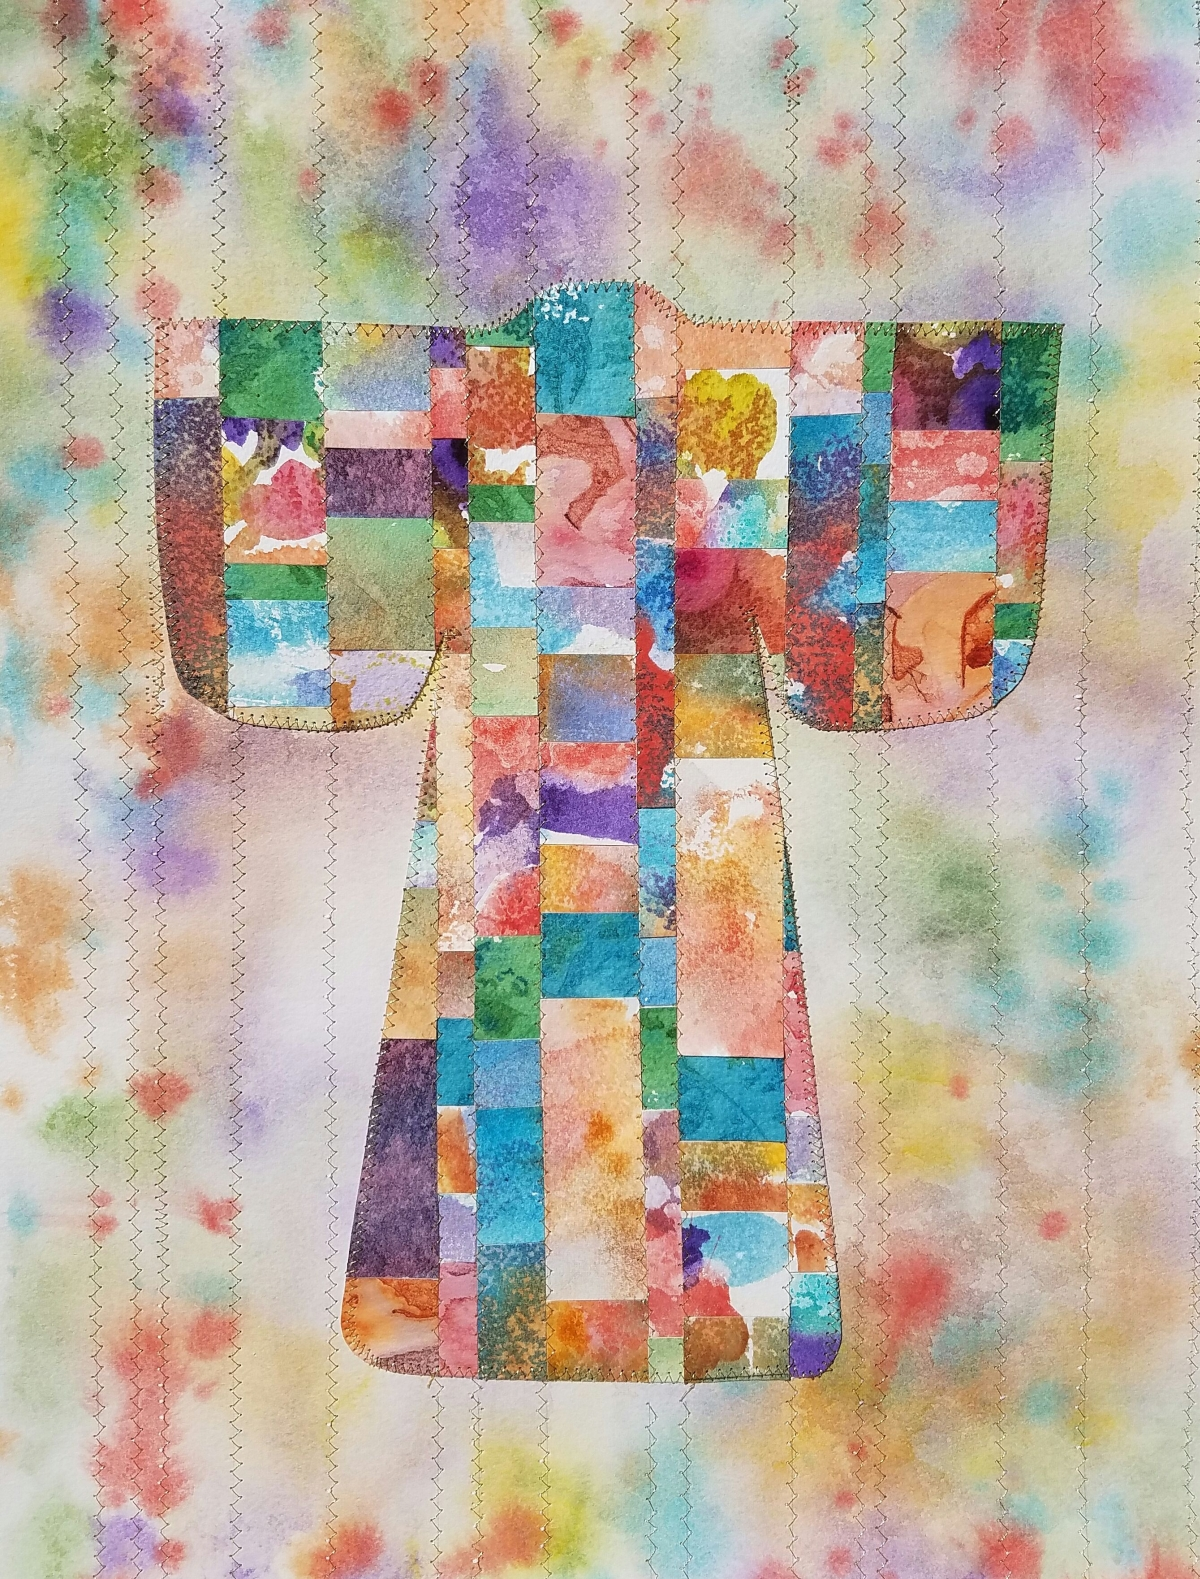 kimono made from colorfully painted paper